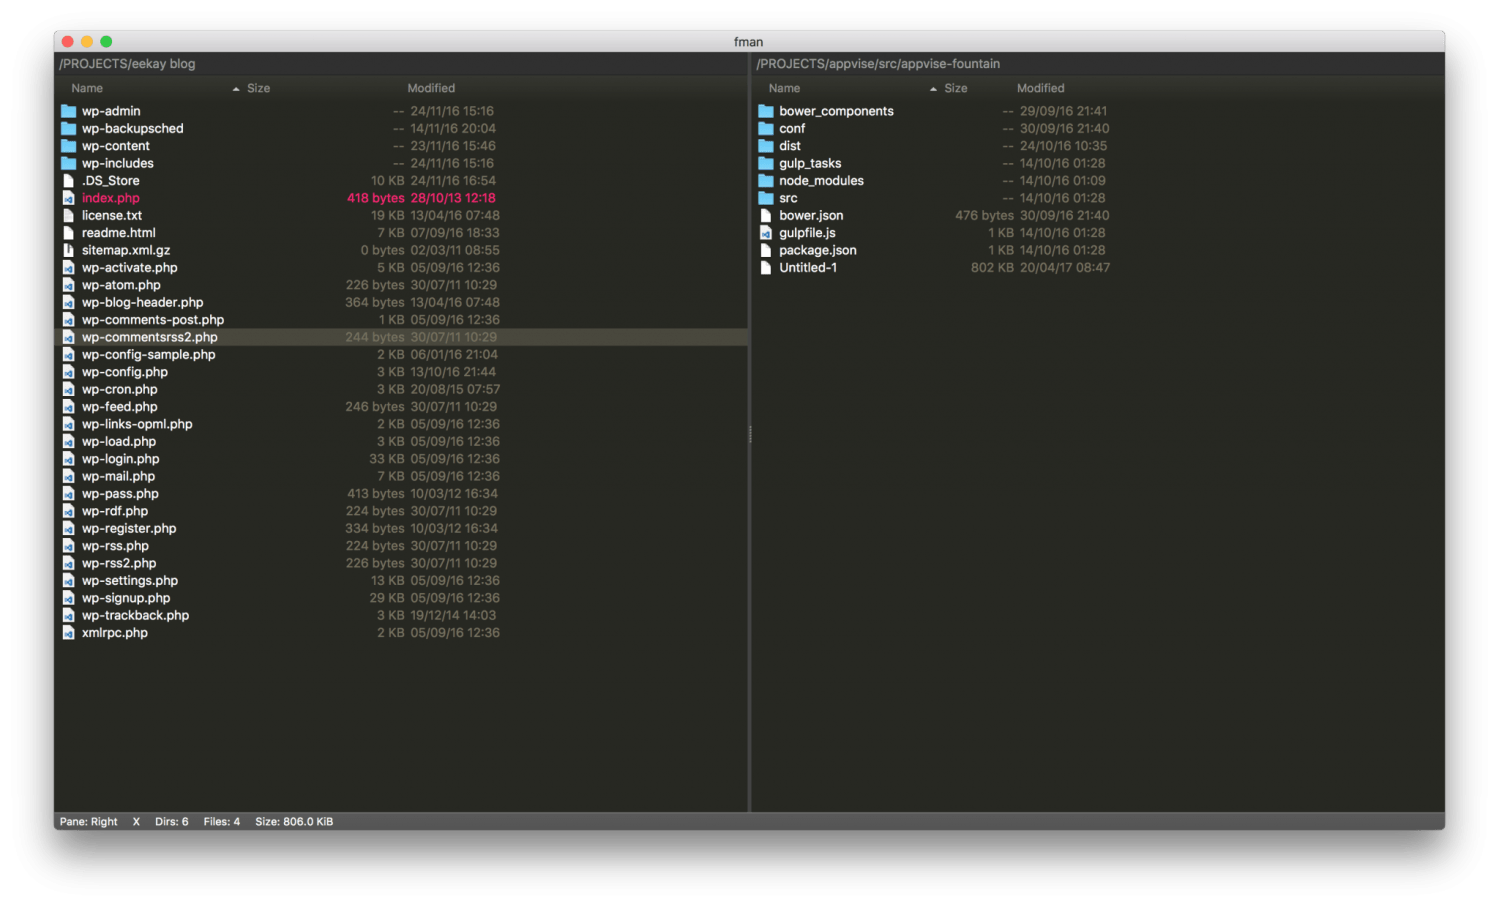 fman, the file manager for Mac